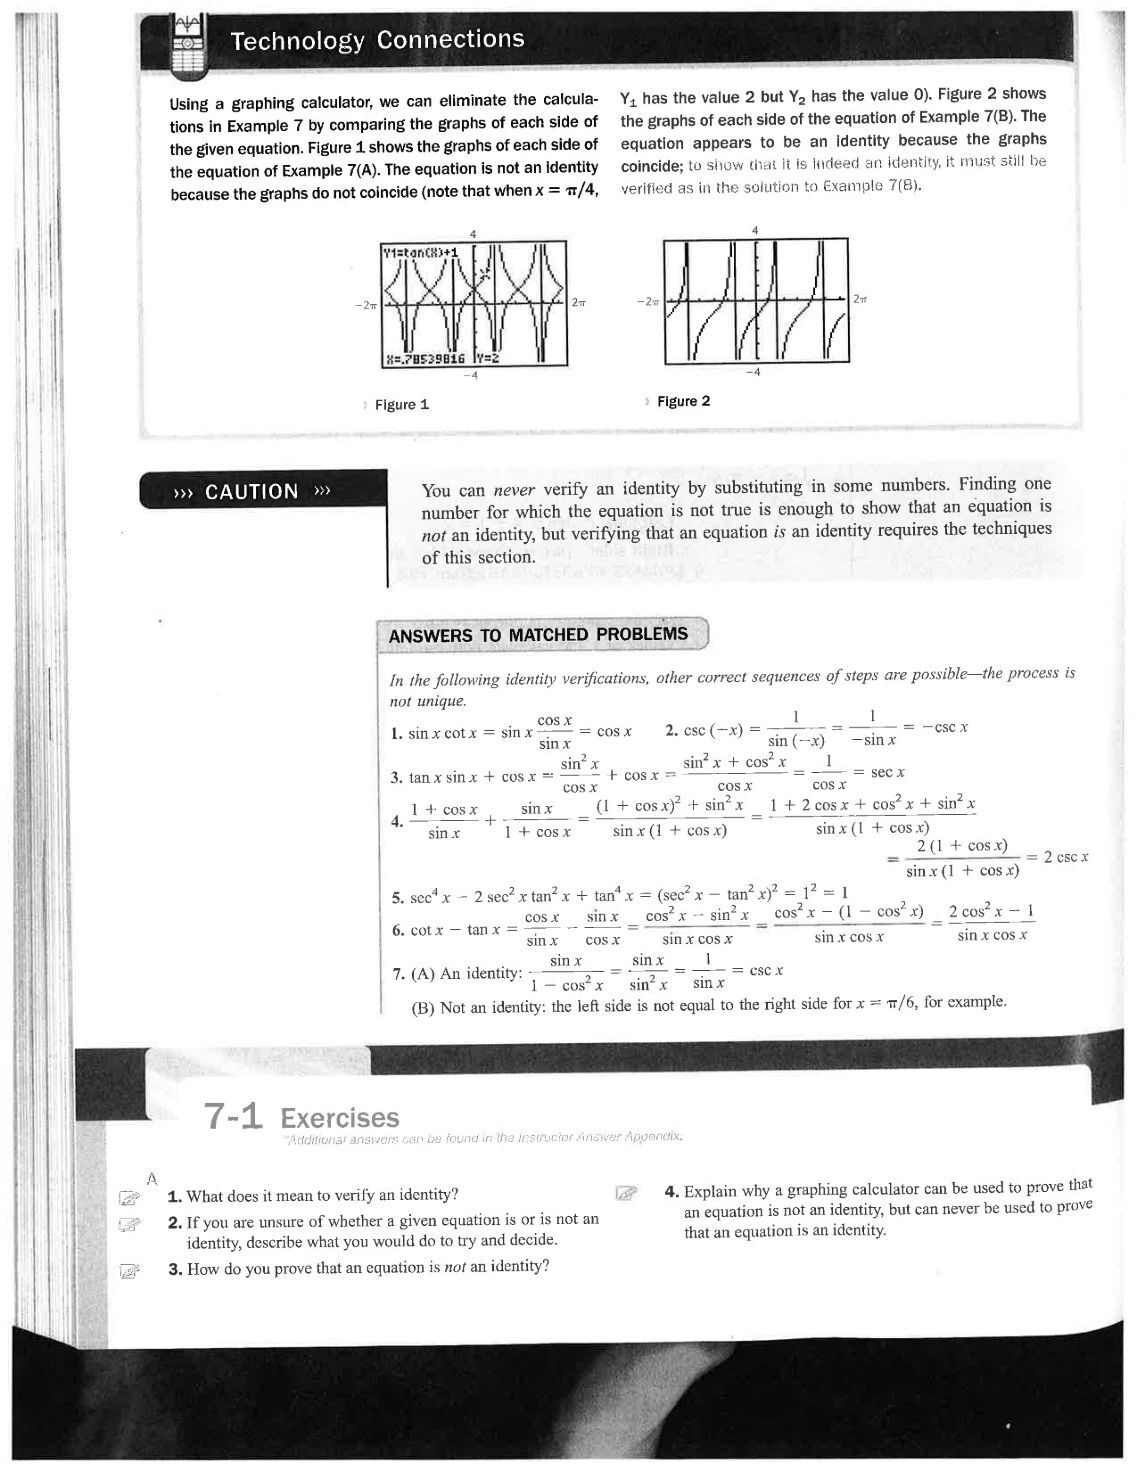 Worksheet Precalculus Worksheets free precalculus worksheets intrepidpath 1 s from wikies